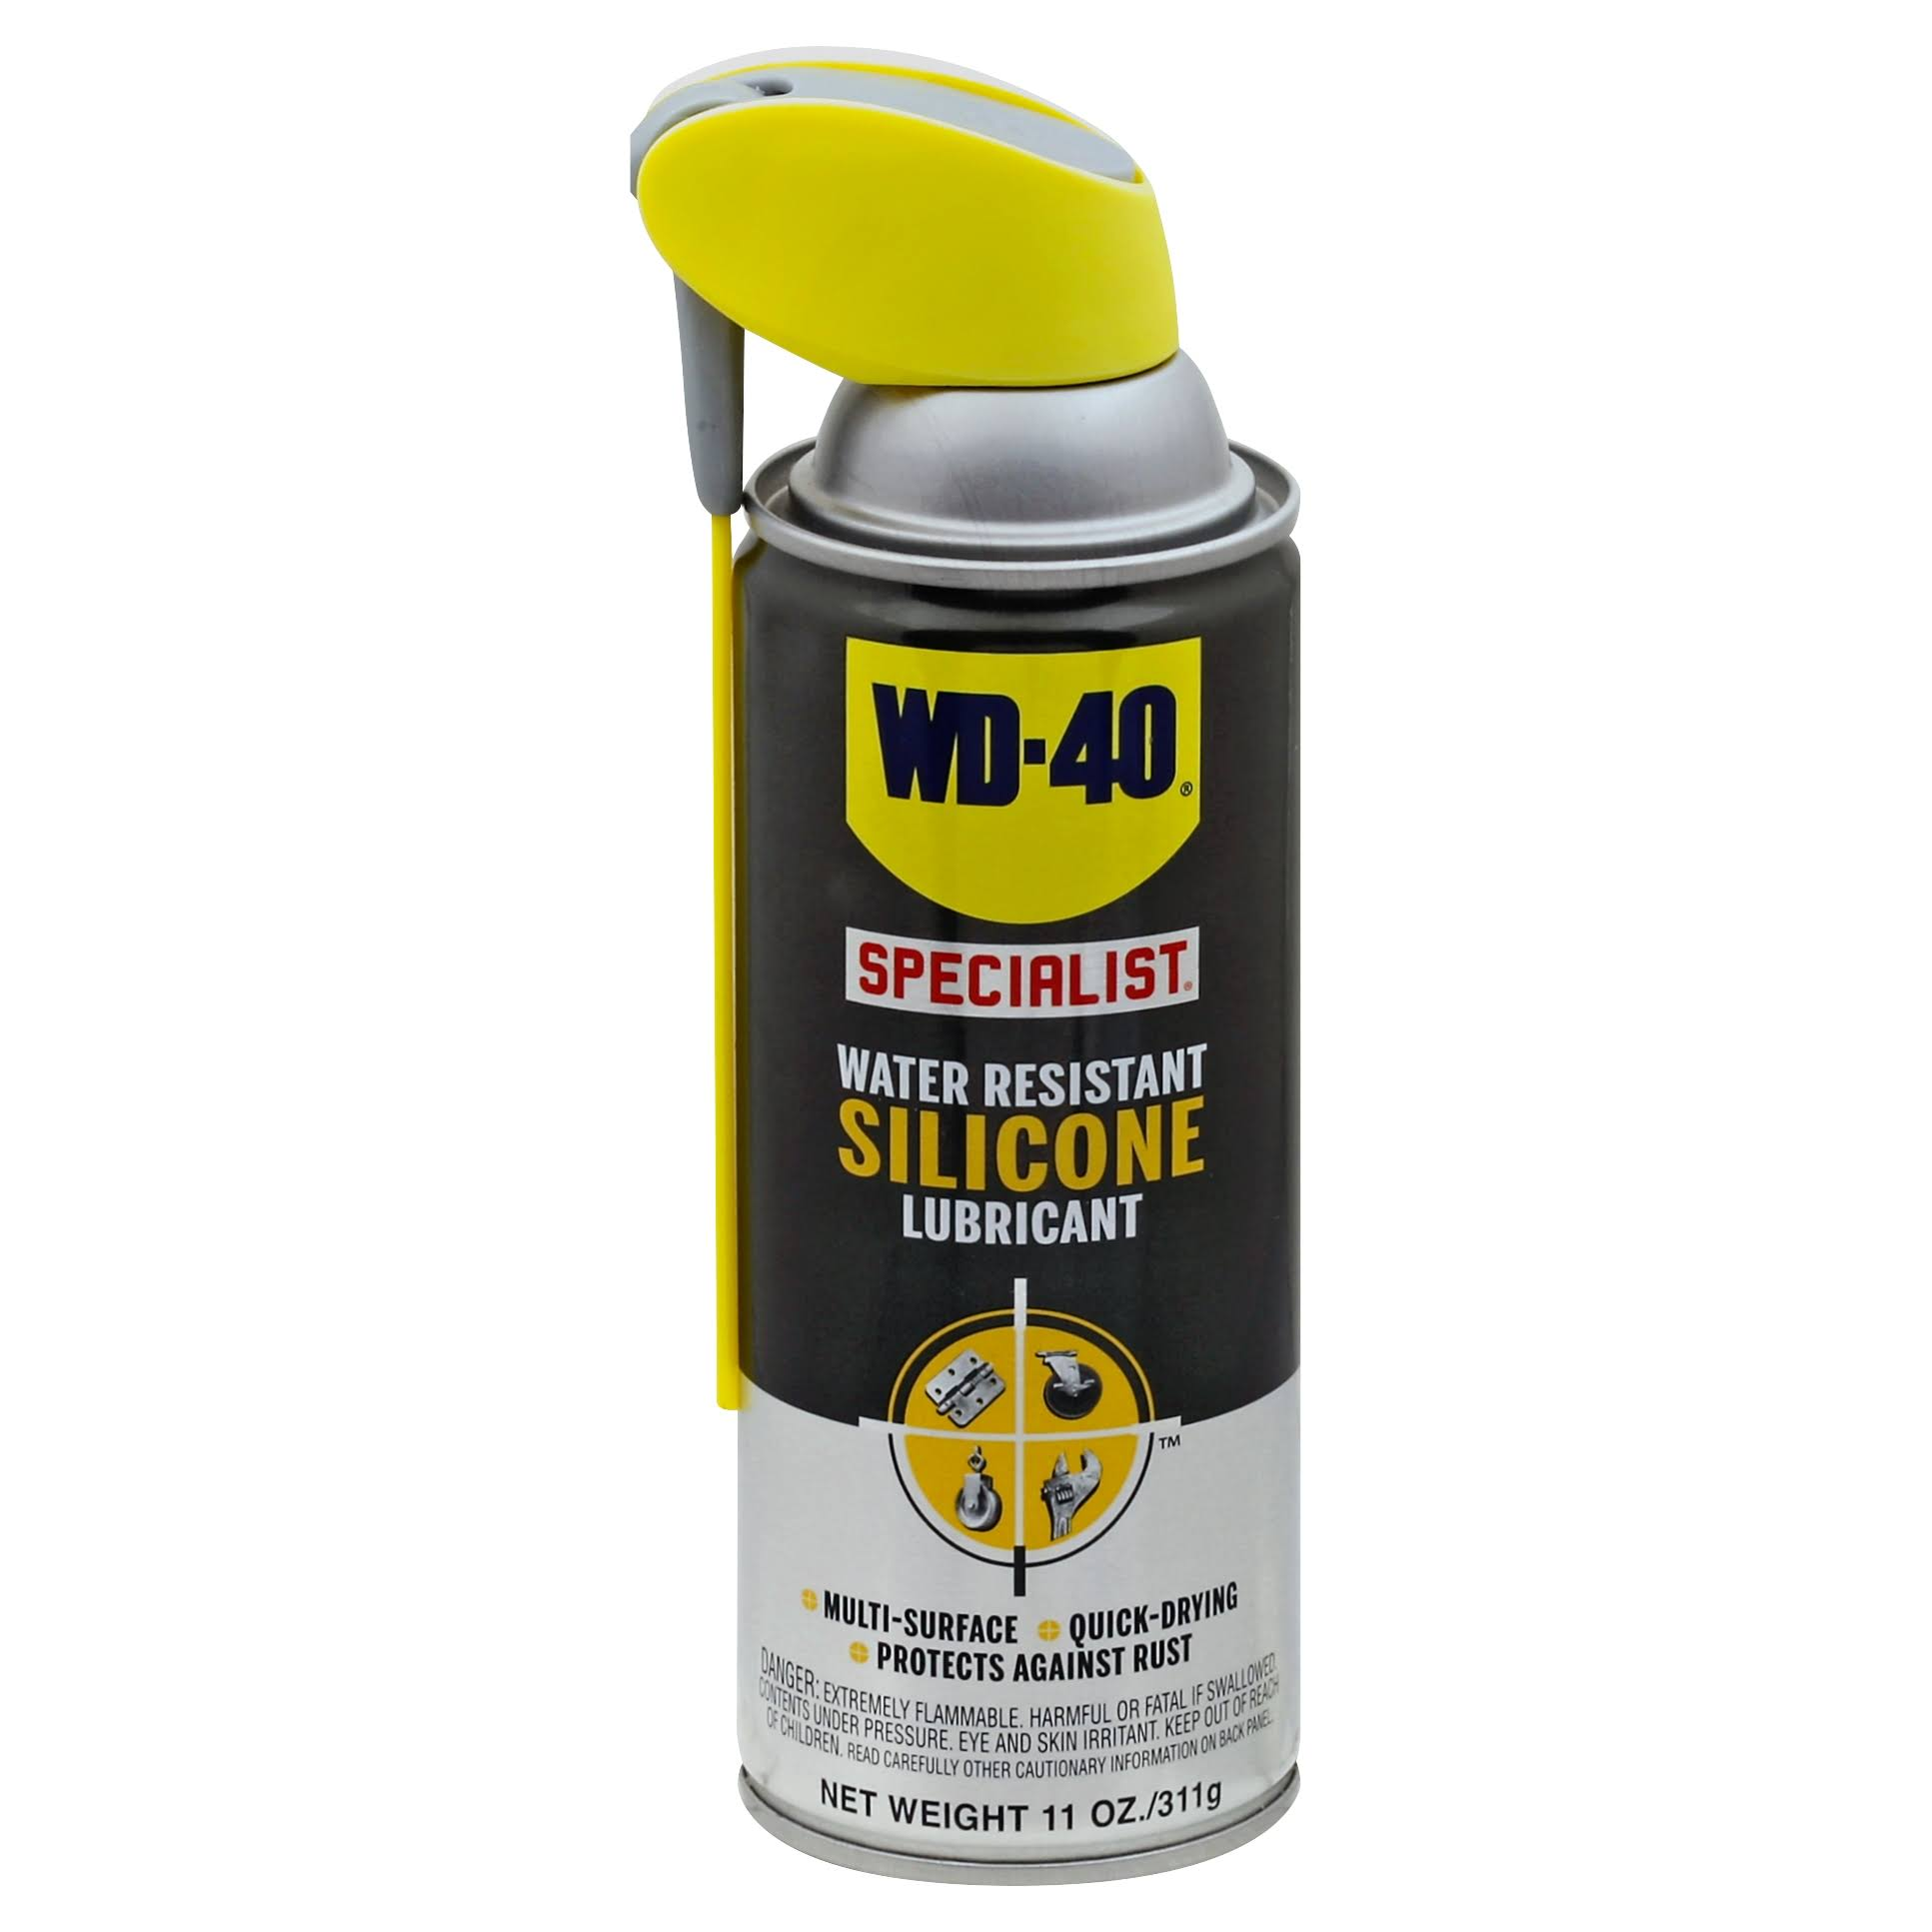 Wd40 Specialist Water Resistant Silicone Lubricant Spray - 311g